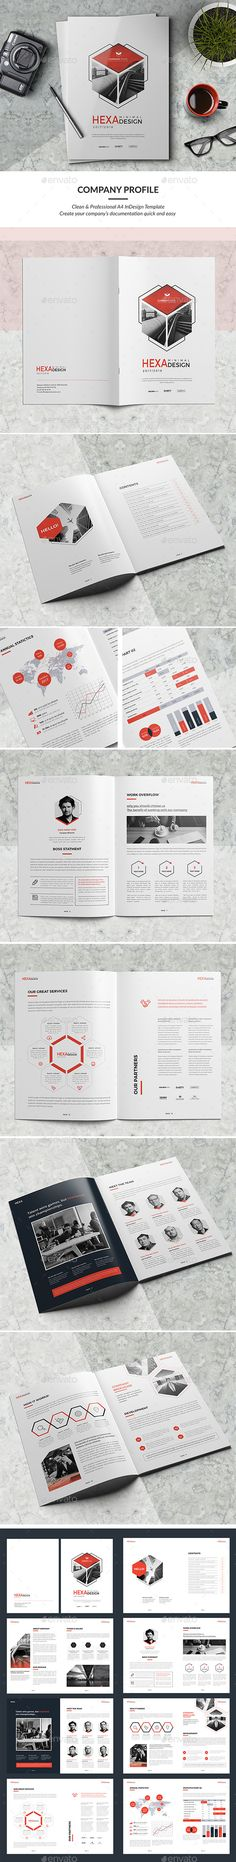 A5 Landscape Company Profile Template INDD Company Profile - company profile sample download